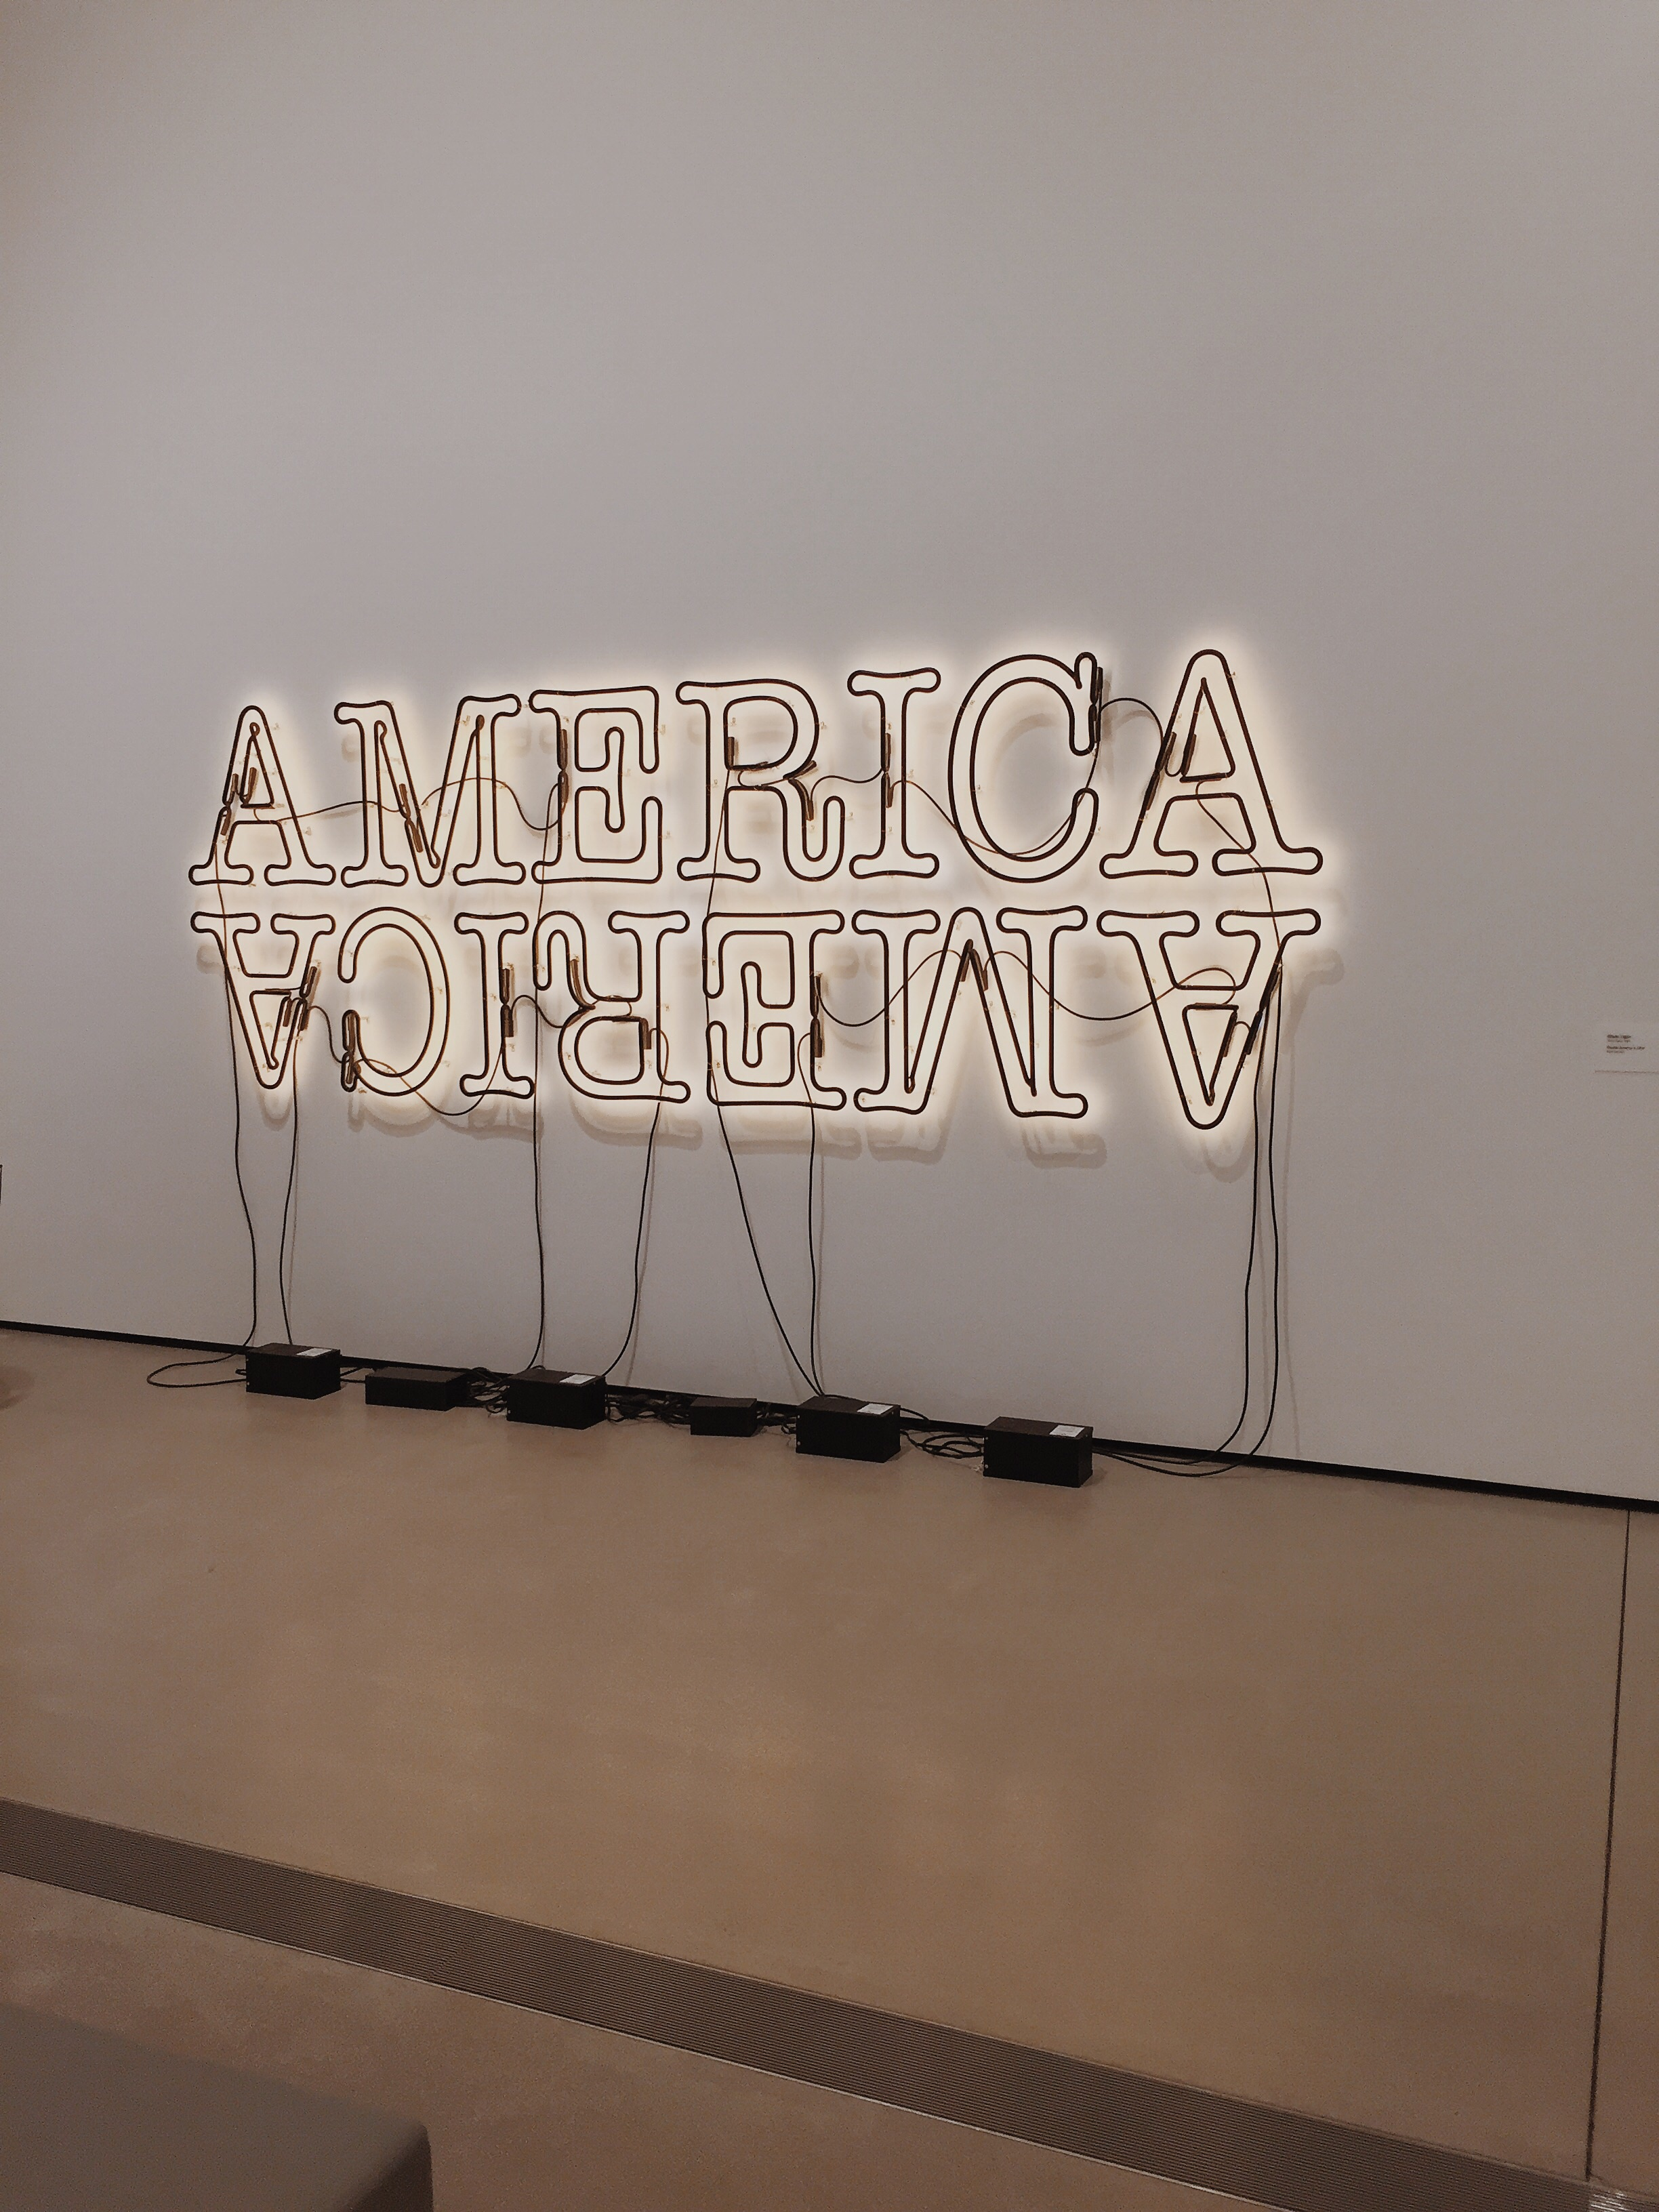 """Double America 2"" by Glenn Ligon"